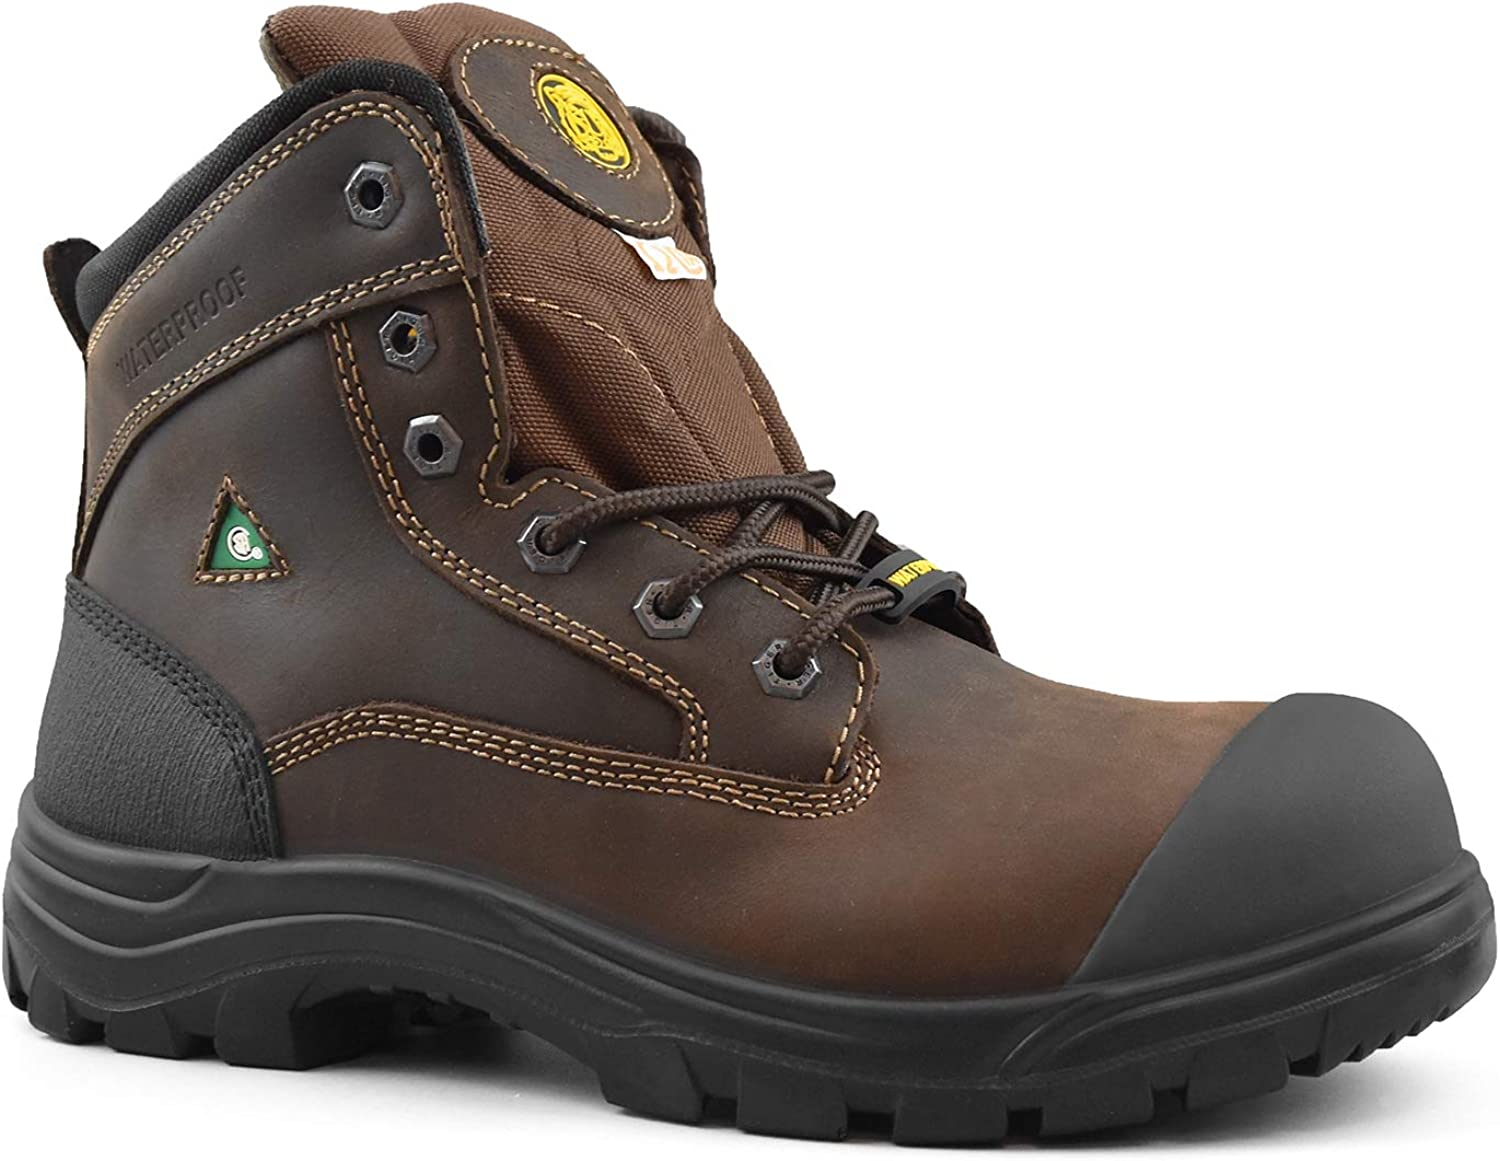 Mens Work Boots Safety Shoes Steel Toe Cap Lightweight Outdoor hiking waterproof